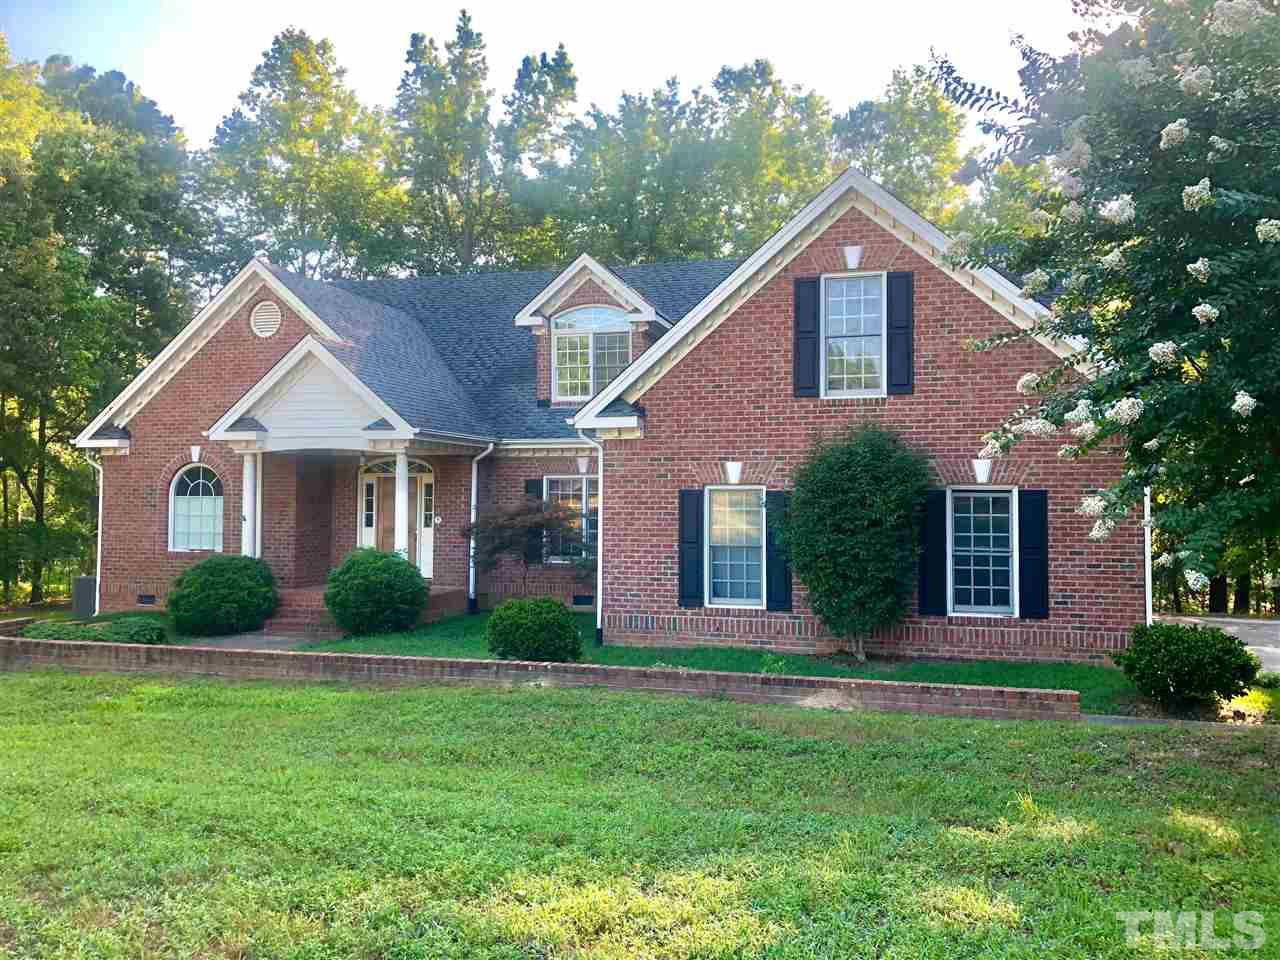 445 Havenfield Court Apex - 1